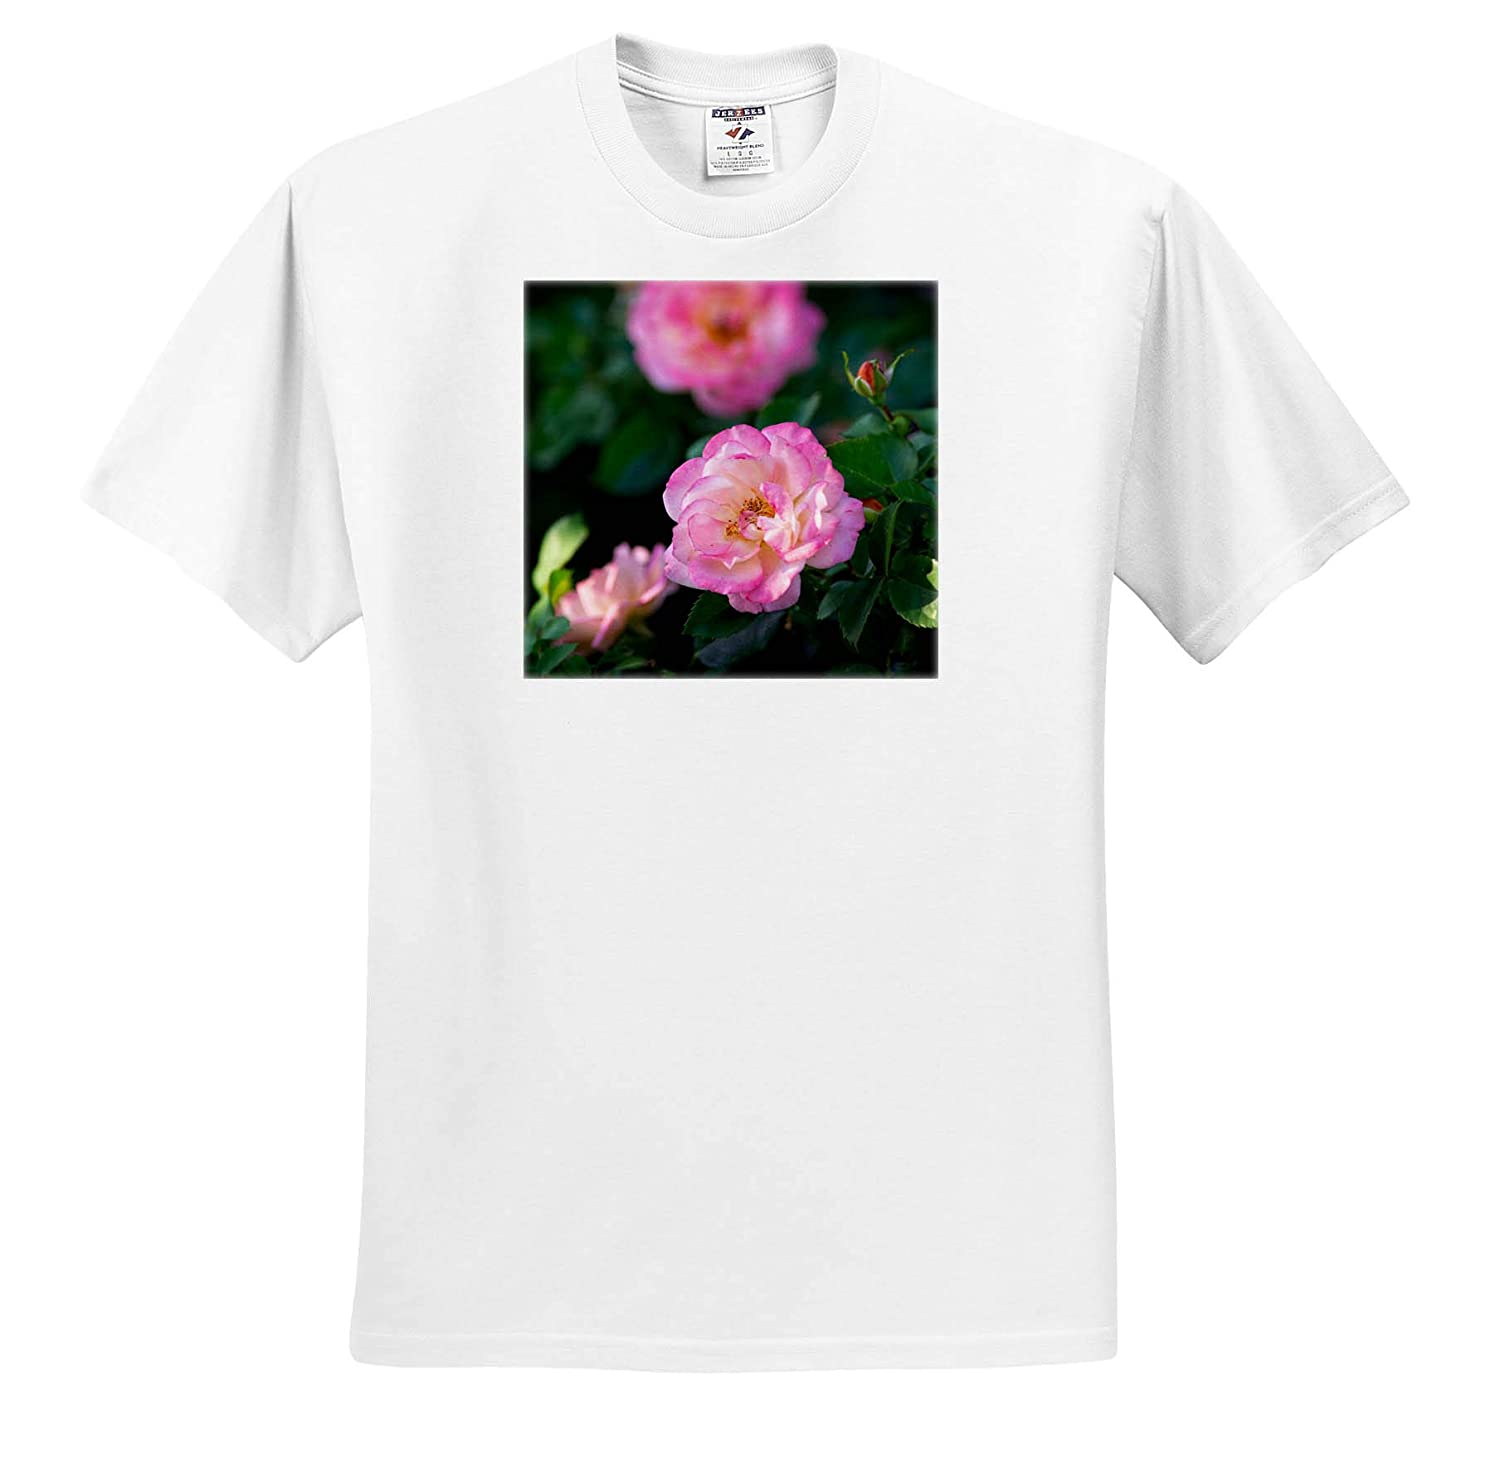 3dRose Alexis Photography Summertime in The Green Garden Beautiful Pink Rose Flower on a Bush T-Shirts Flowers Roses